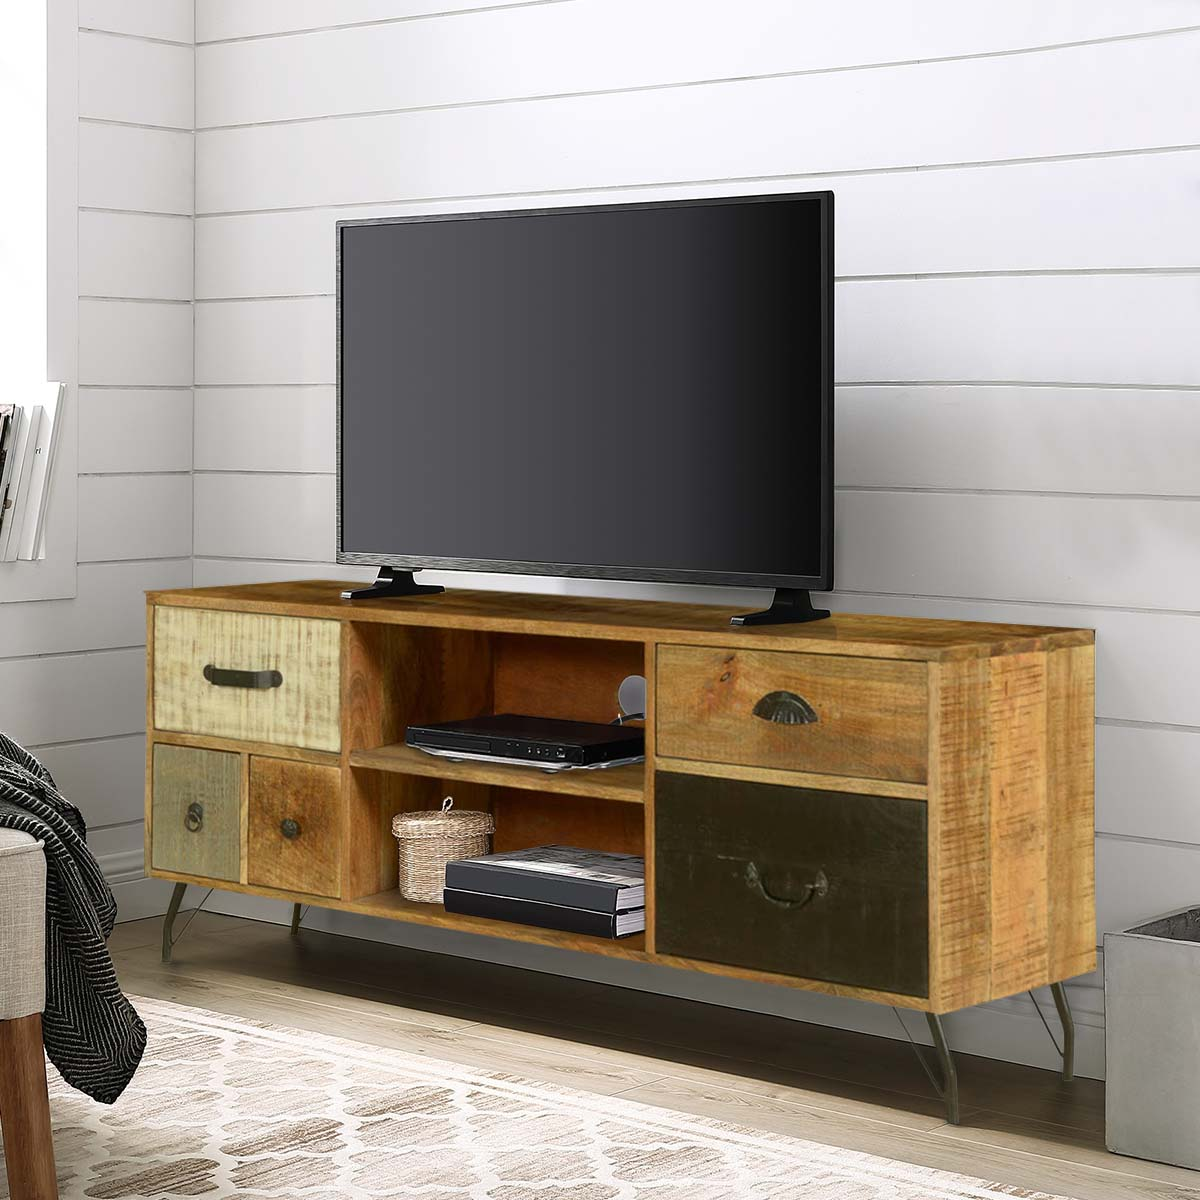 "Wooden Patches Mango Wood & Iron 52.5"" TV Console Media Island"